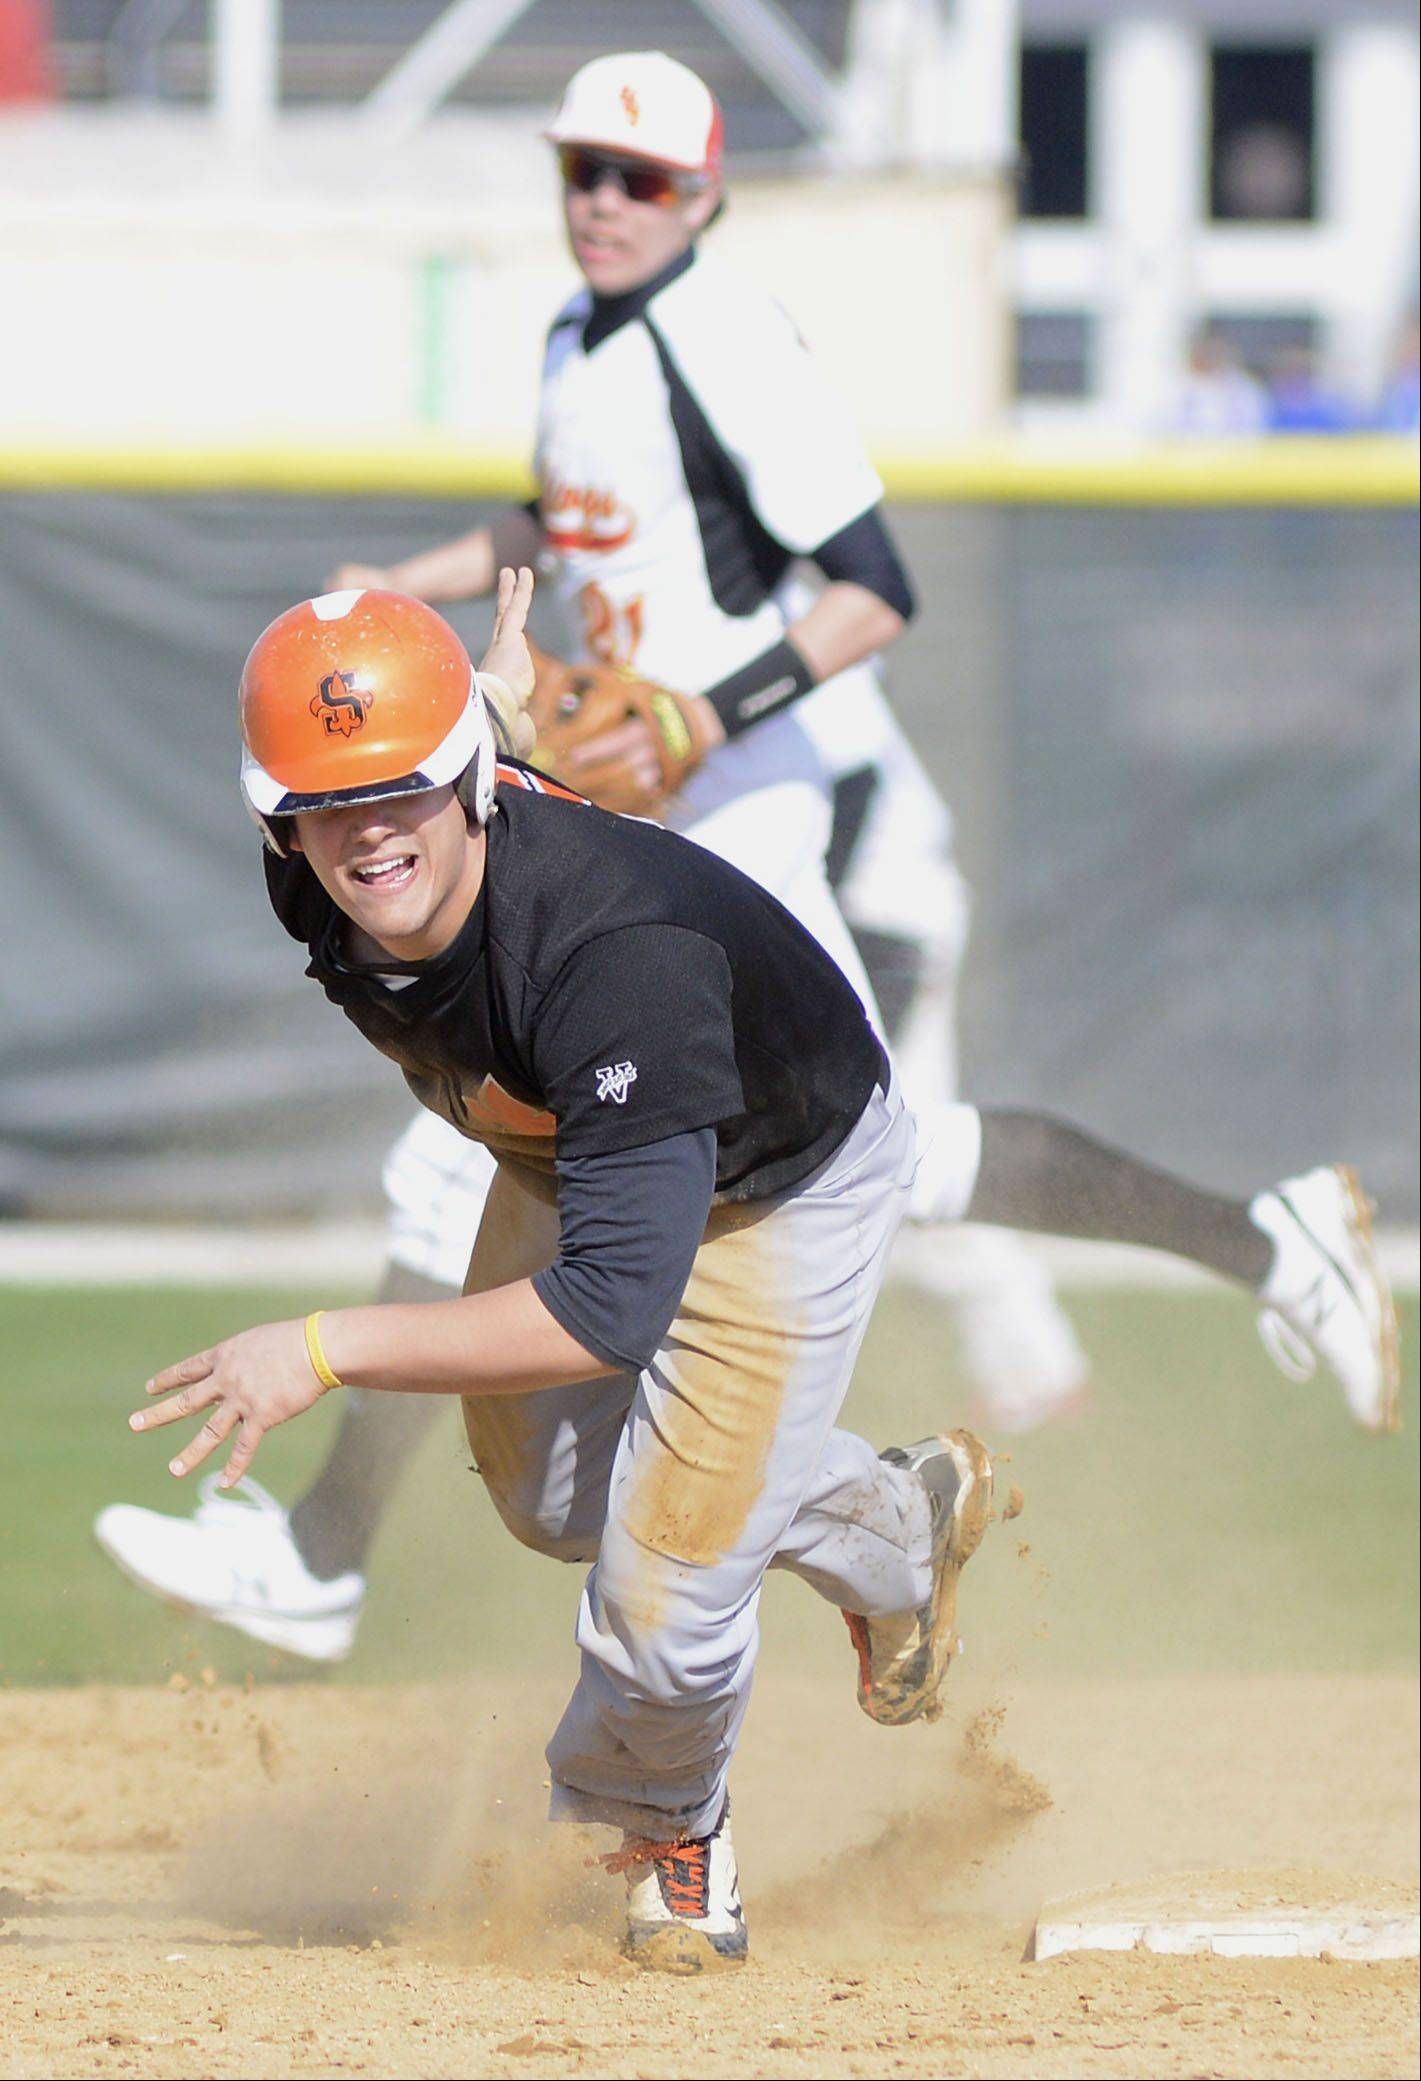 St. Charles East's Anthony Sciarrino picks himself up after sliding into second base and heads for third in the second inning on Wednesday, April 24.